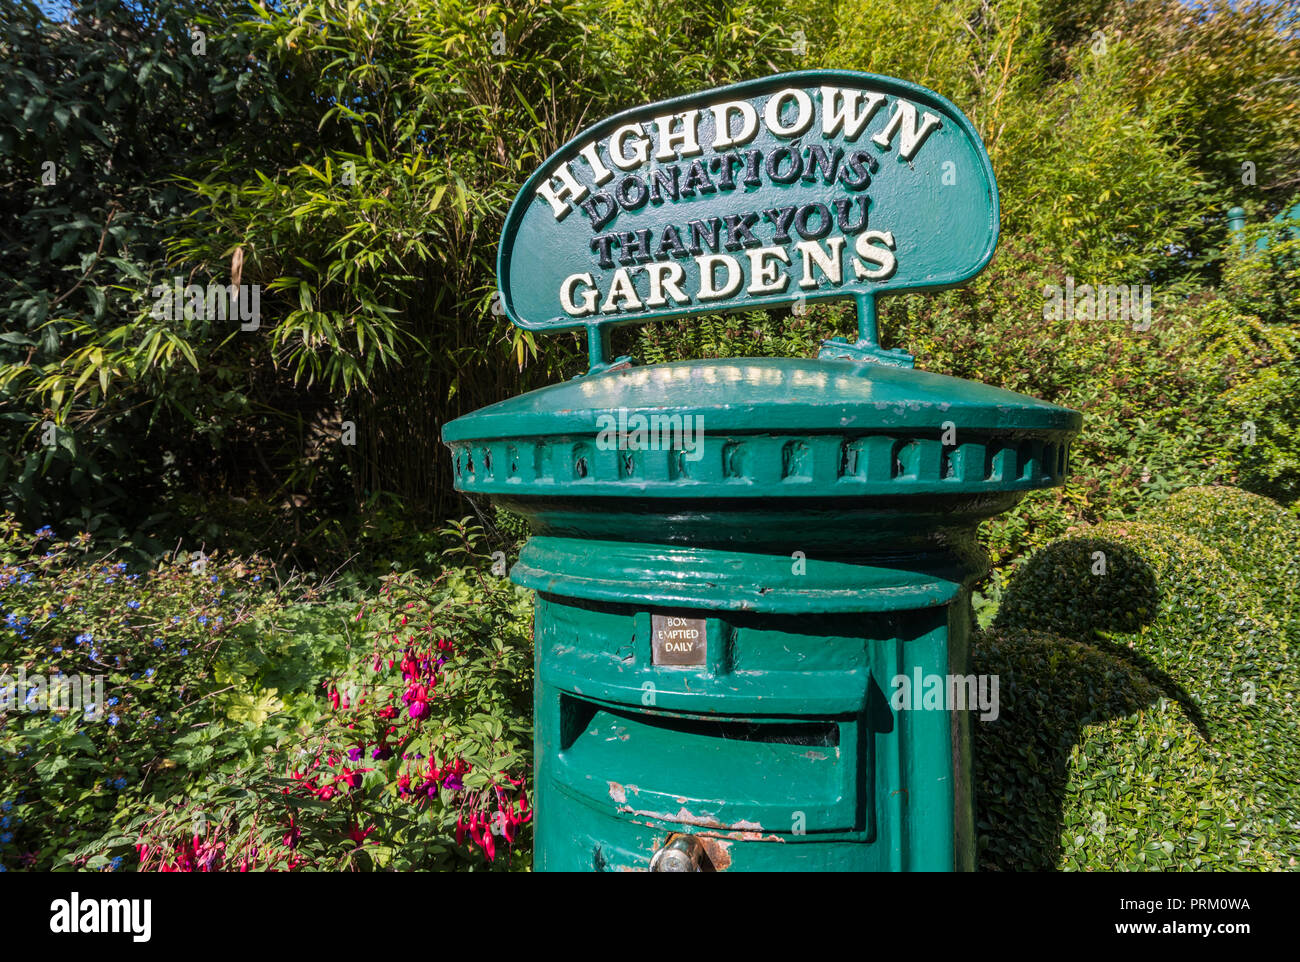 Old Royal Mail Pillar Box painted green and used for donations to Highdown Gardens in West Sussex, England, UK. - Stock Image